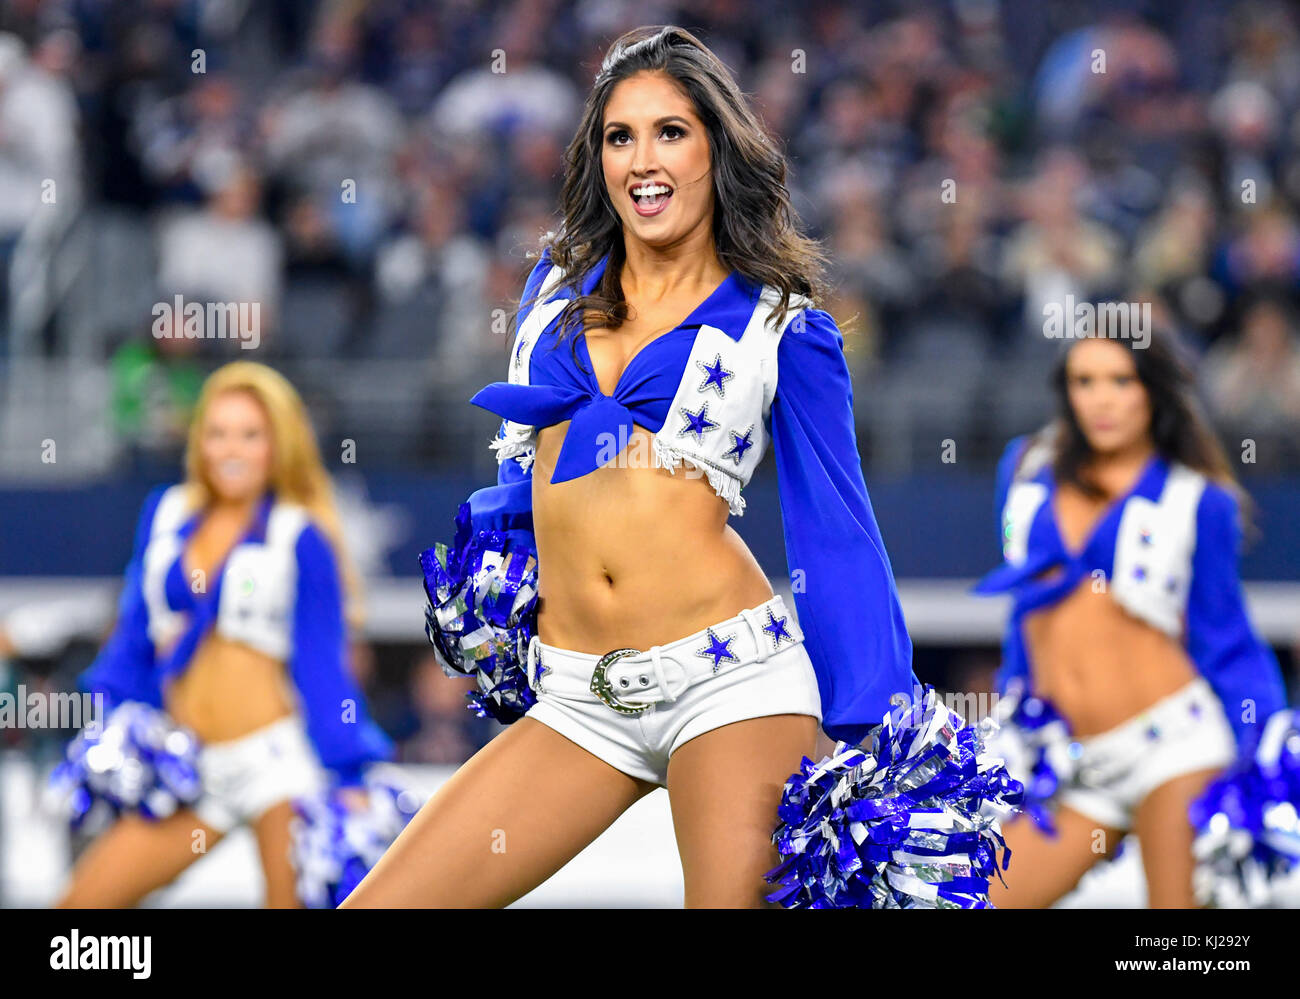 50020c37059 November 19, 2017: The Dallas Cowboys cheerleaders perform during an NFL  football game between